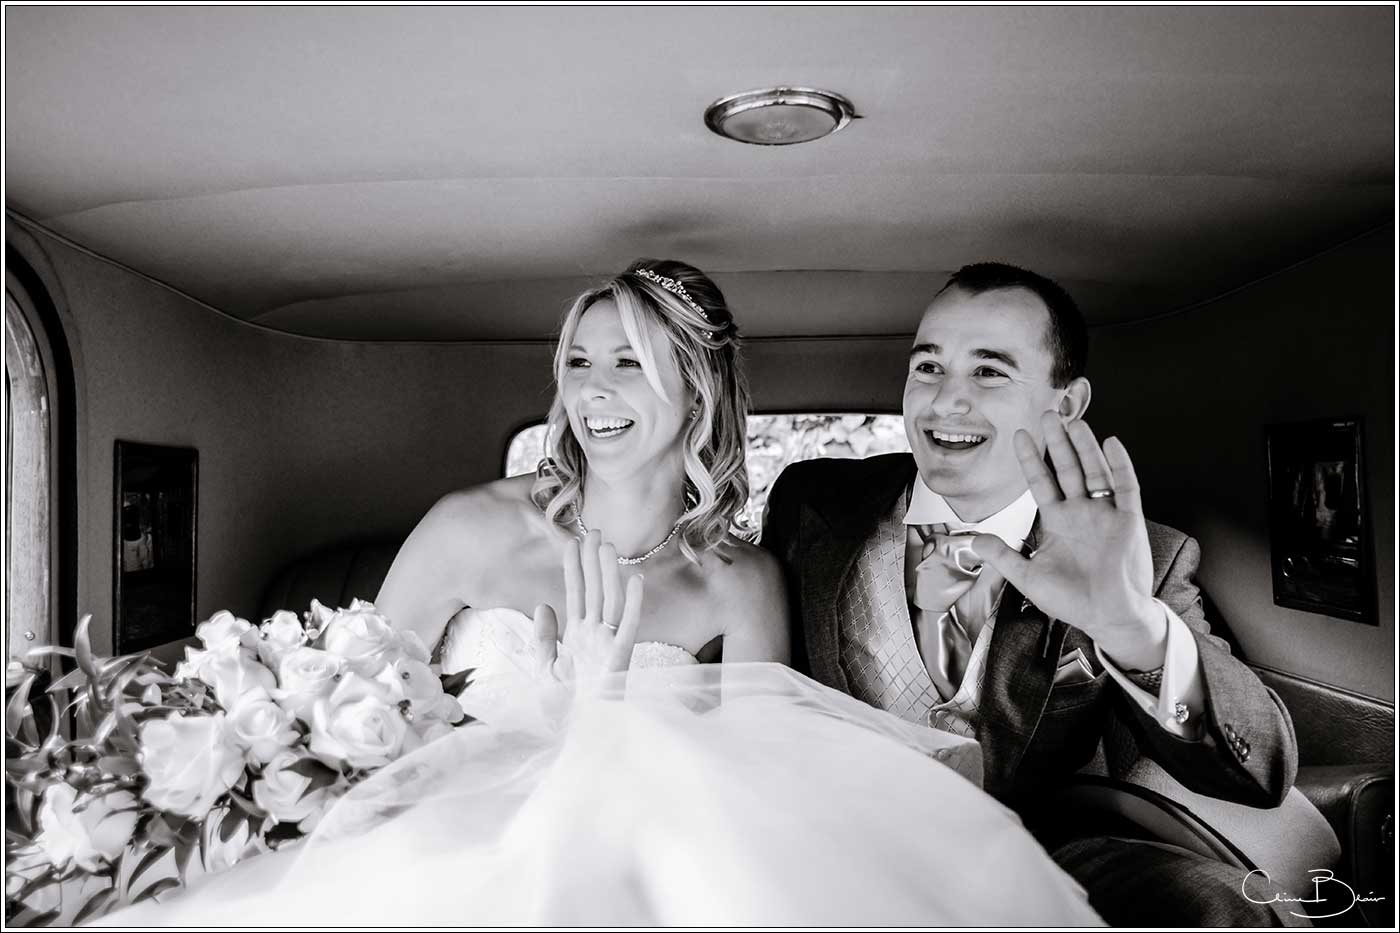 Bride and groom in wedding car-by Hampton manor wedding photographer Clive Blair Photography